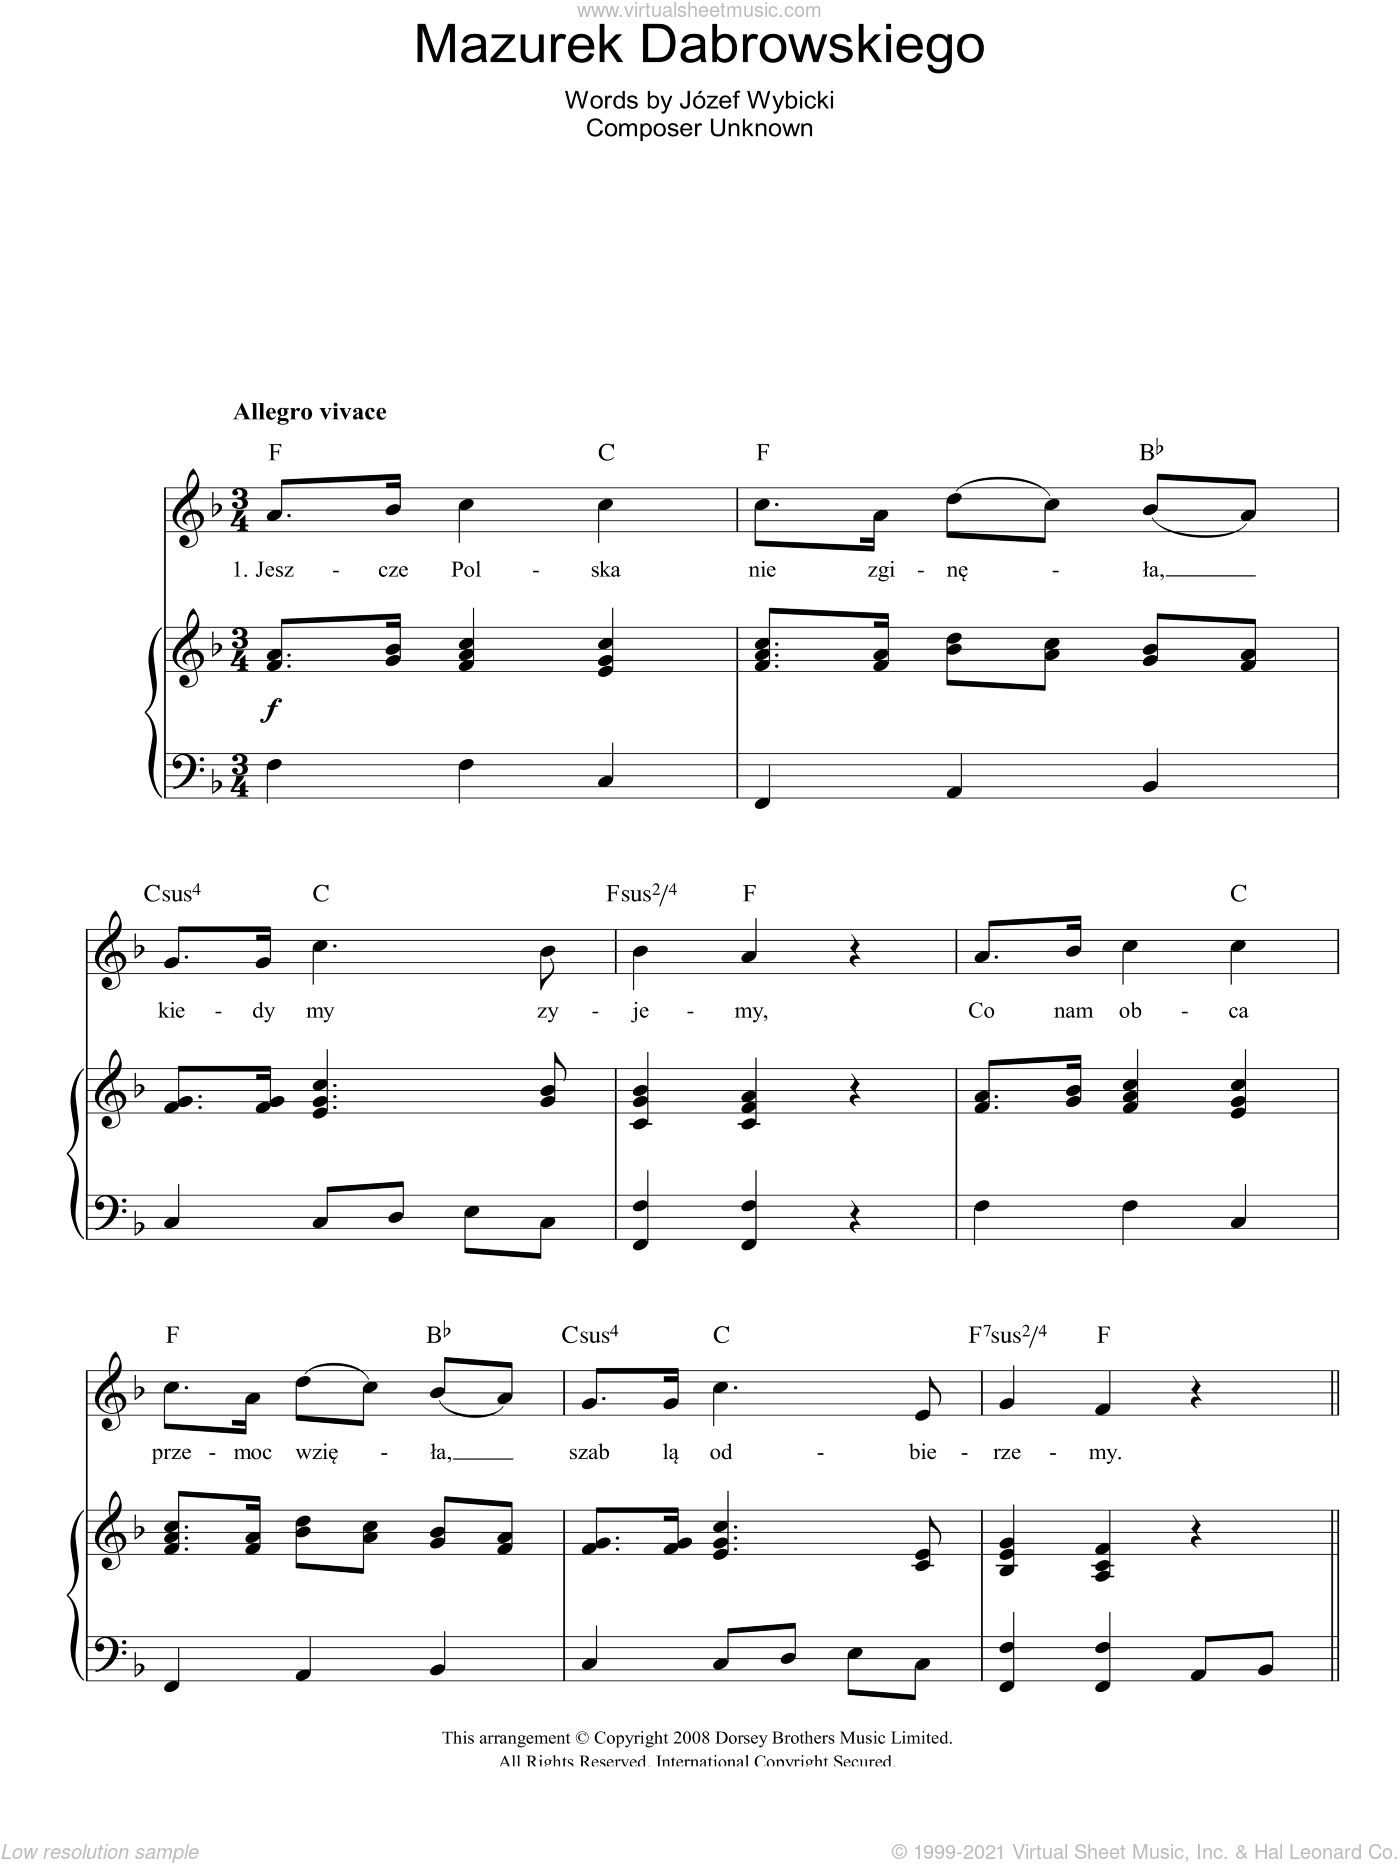 Mazurek Dabrowskiego (Polish National Anthem) sheet music for voice, piano or guitar by Jozef Wybicki. Score Image Preview.